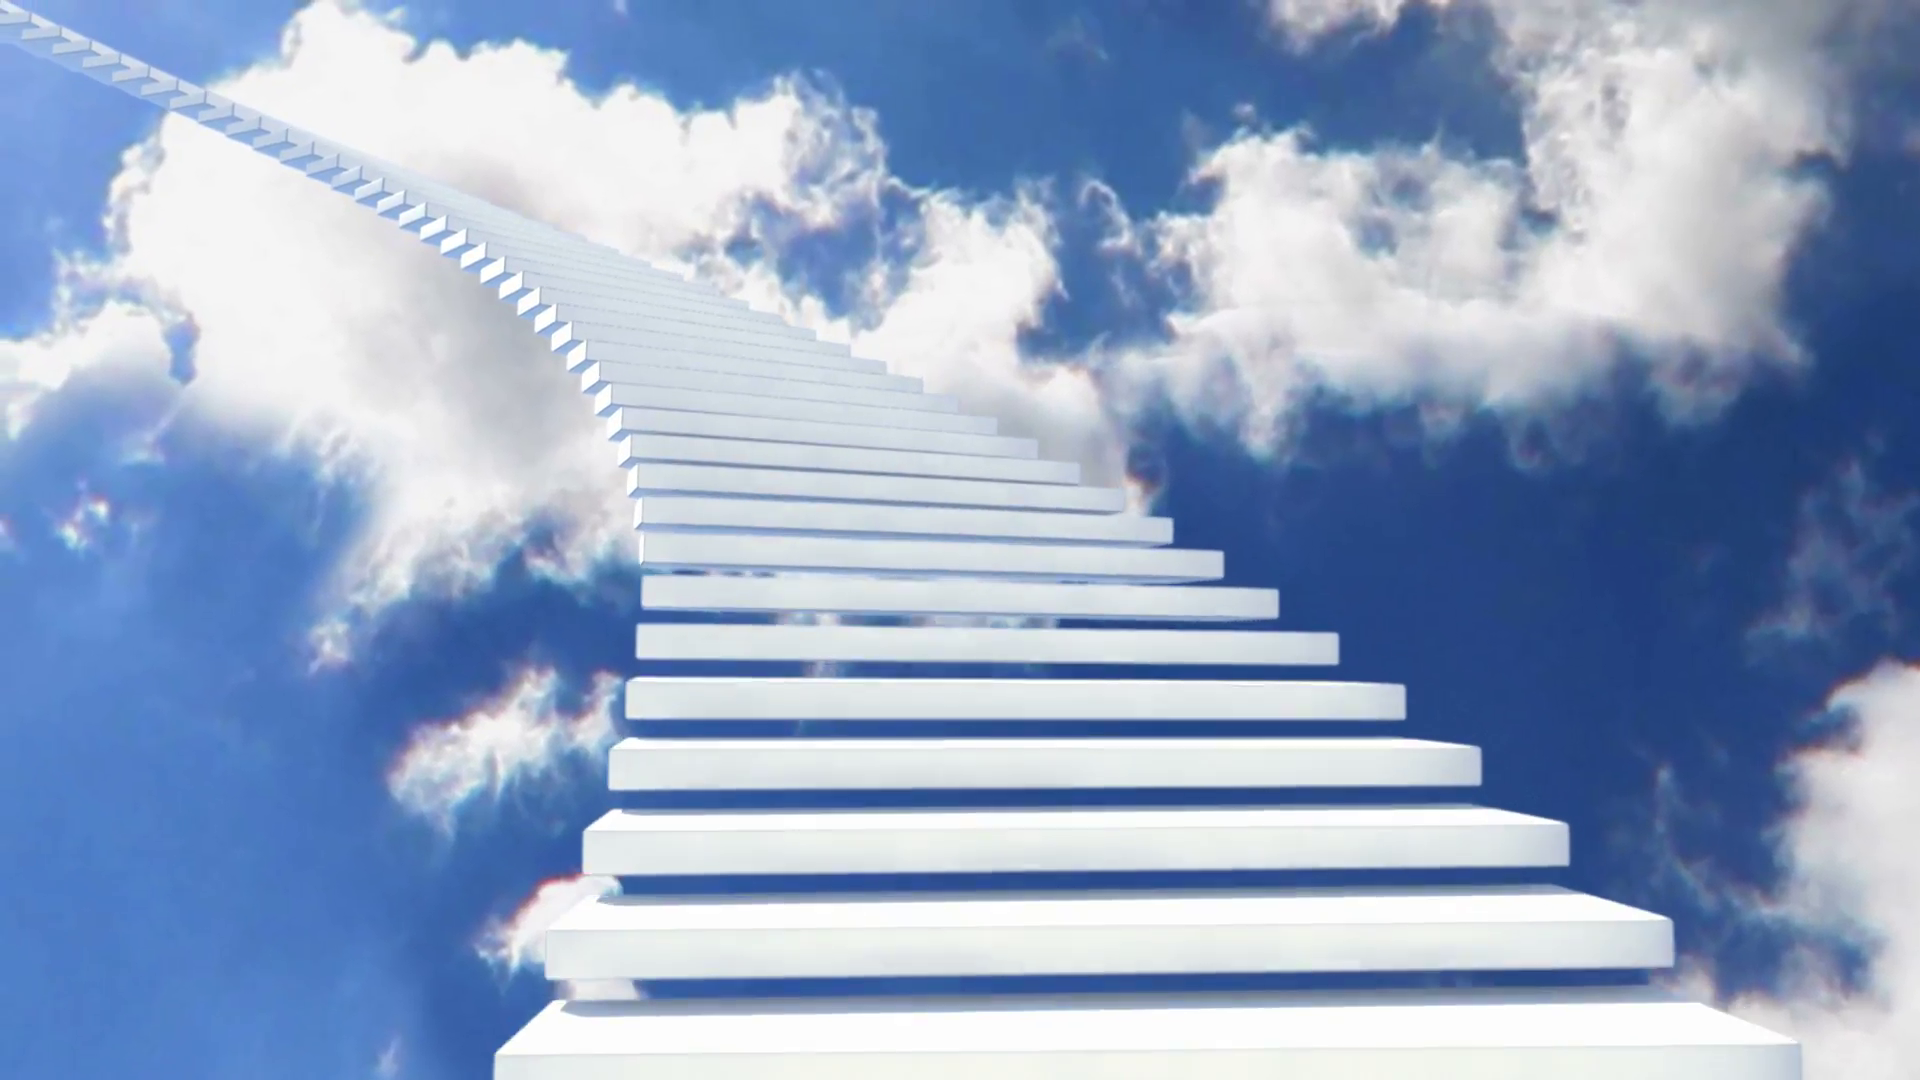 image of a stairway going up into the sky and clouds